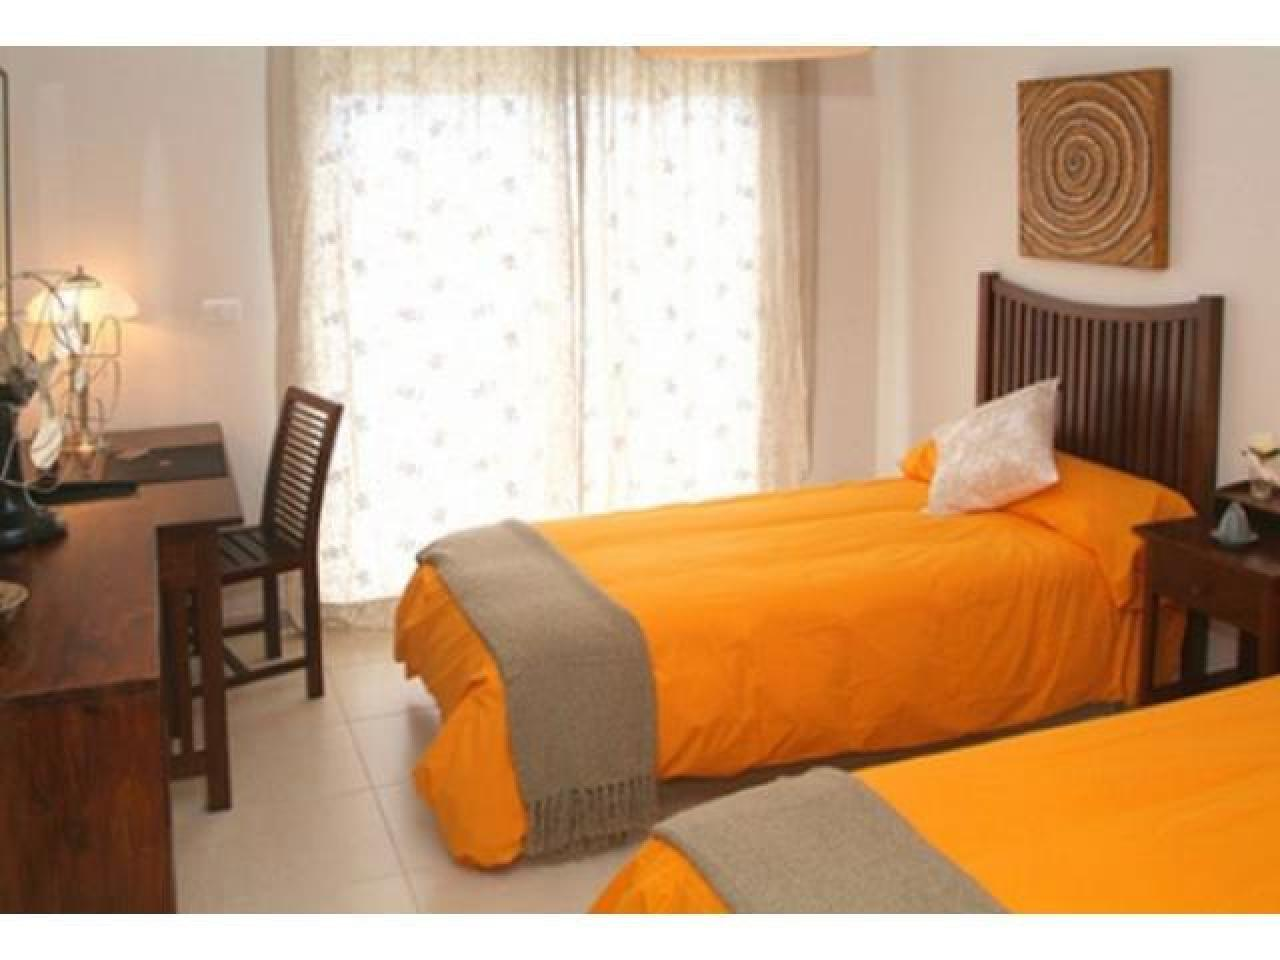 Real estate in Tenerife for sale » #44 - 2